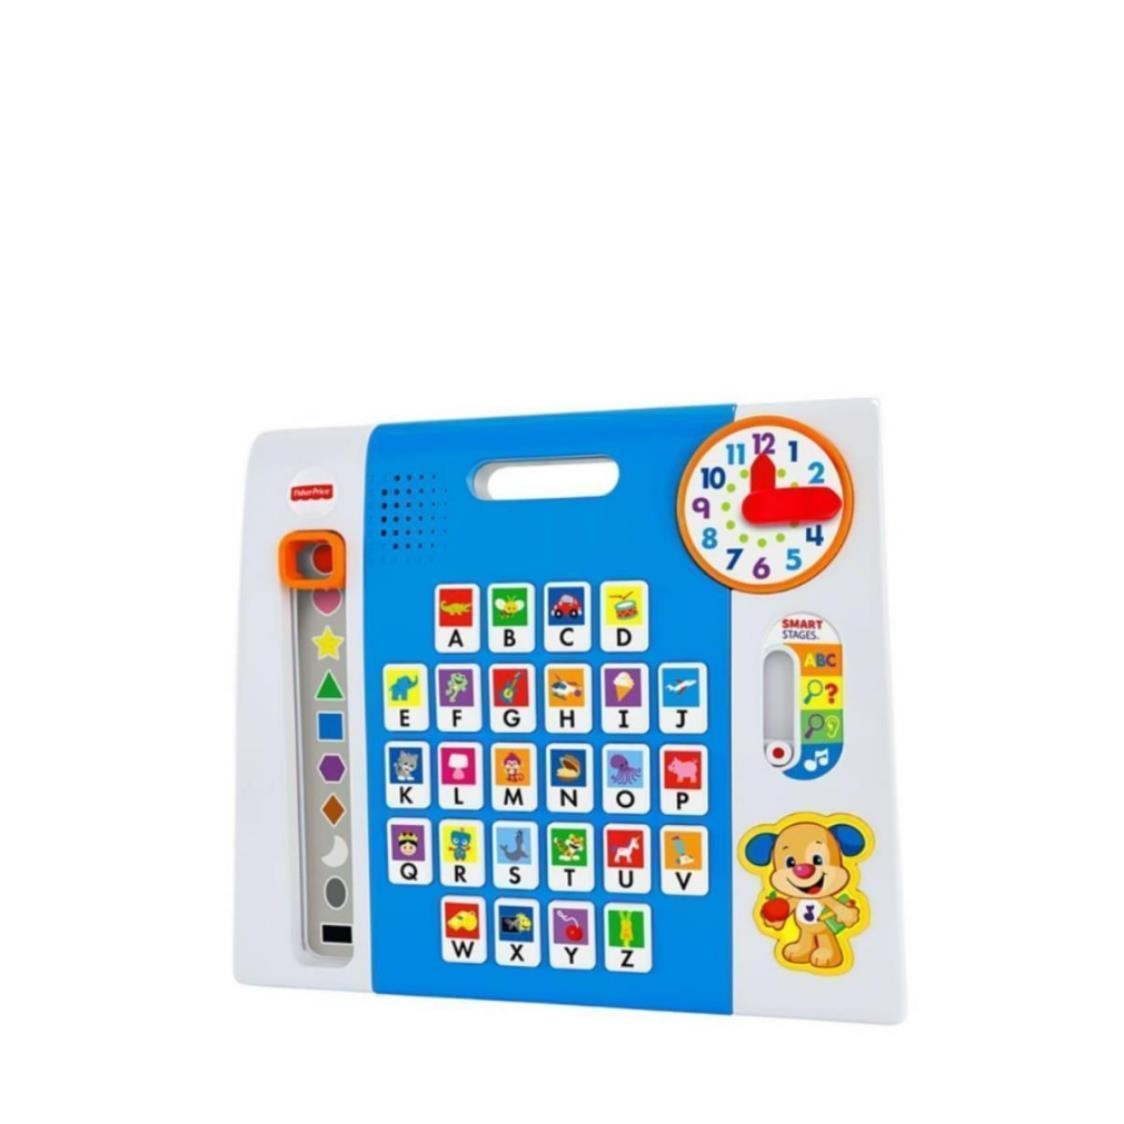 LL Puppys A To Z Smart Pad